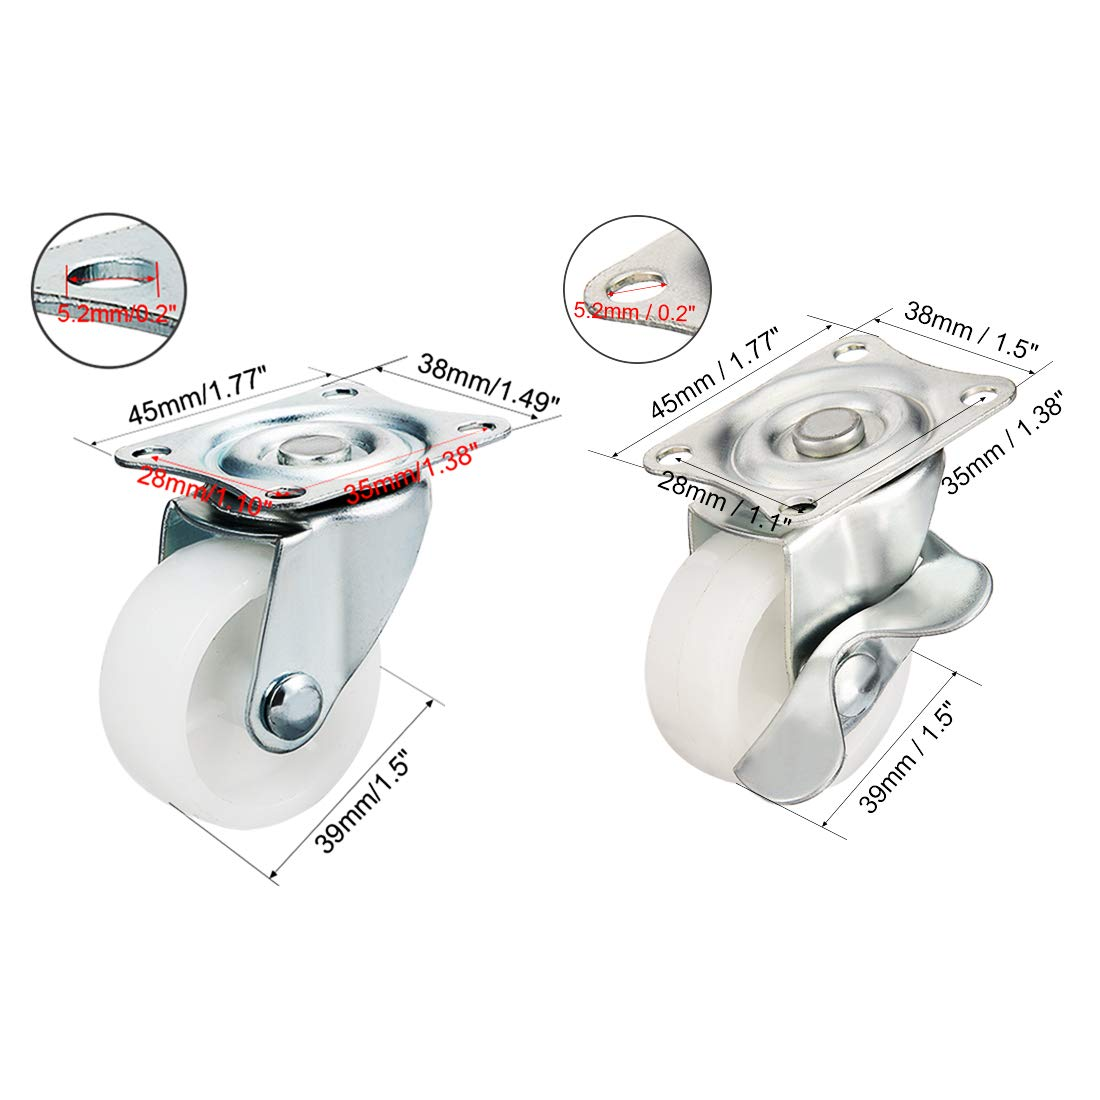 uxcell 2 Inch Swivel Caster Wheels PP 360 Degree Top Plate Mounted Caster Wheel 44lb Capacity